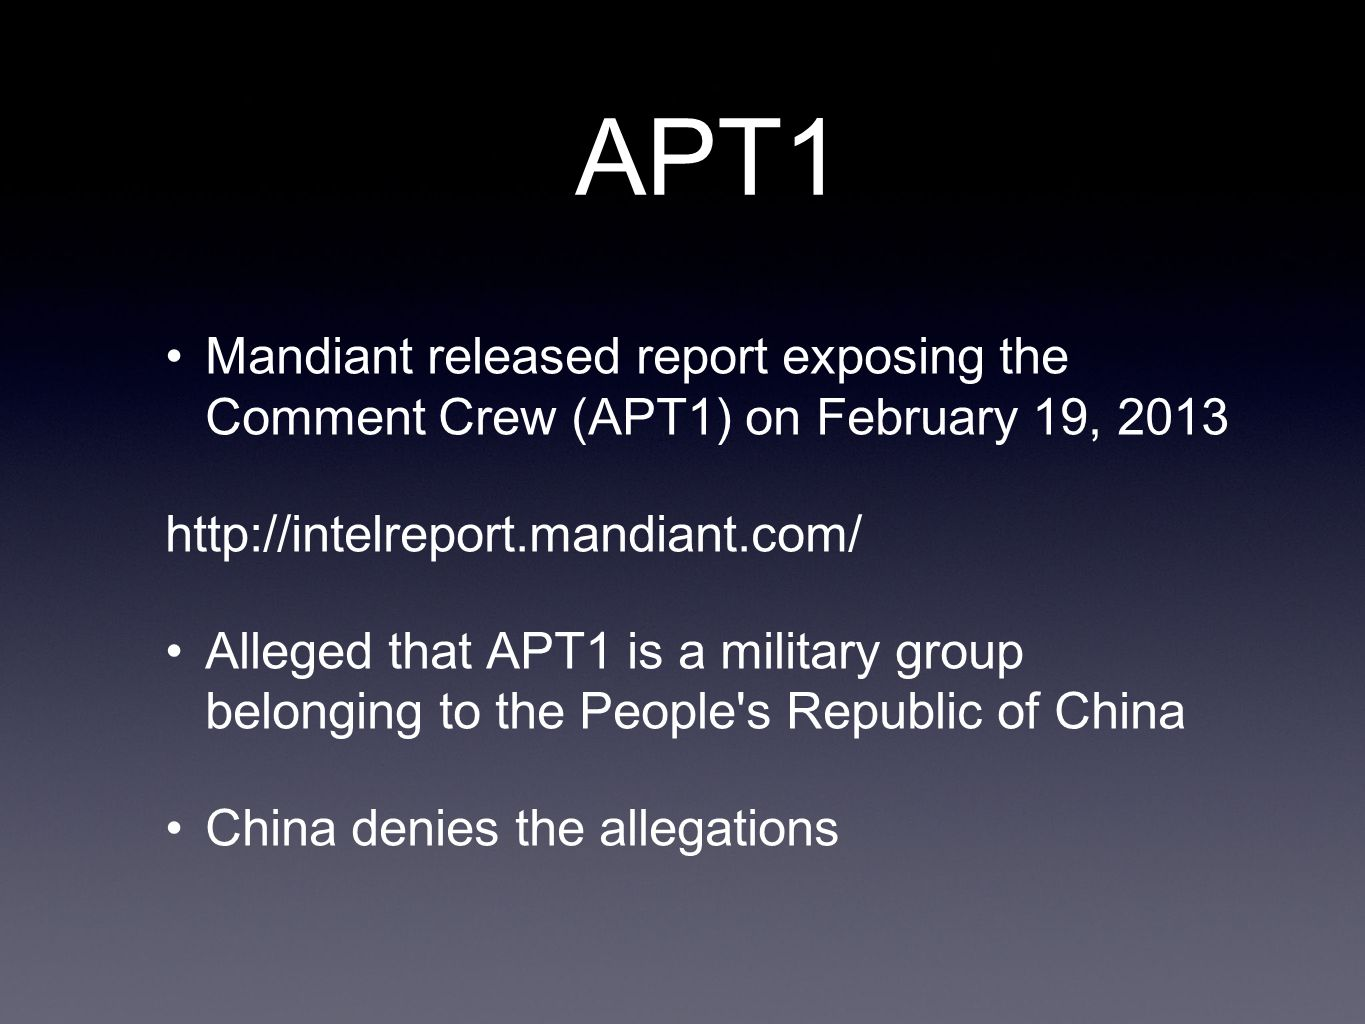 APT1 Mandiant released report exposing the Comment Crew (APT1) on February 19, 2013 http://intelreport.mandiant.com/ Alleged that APT1 is a military group belonging to the People s Republic of China China denies the allegations